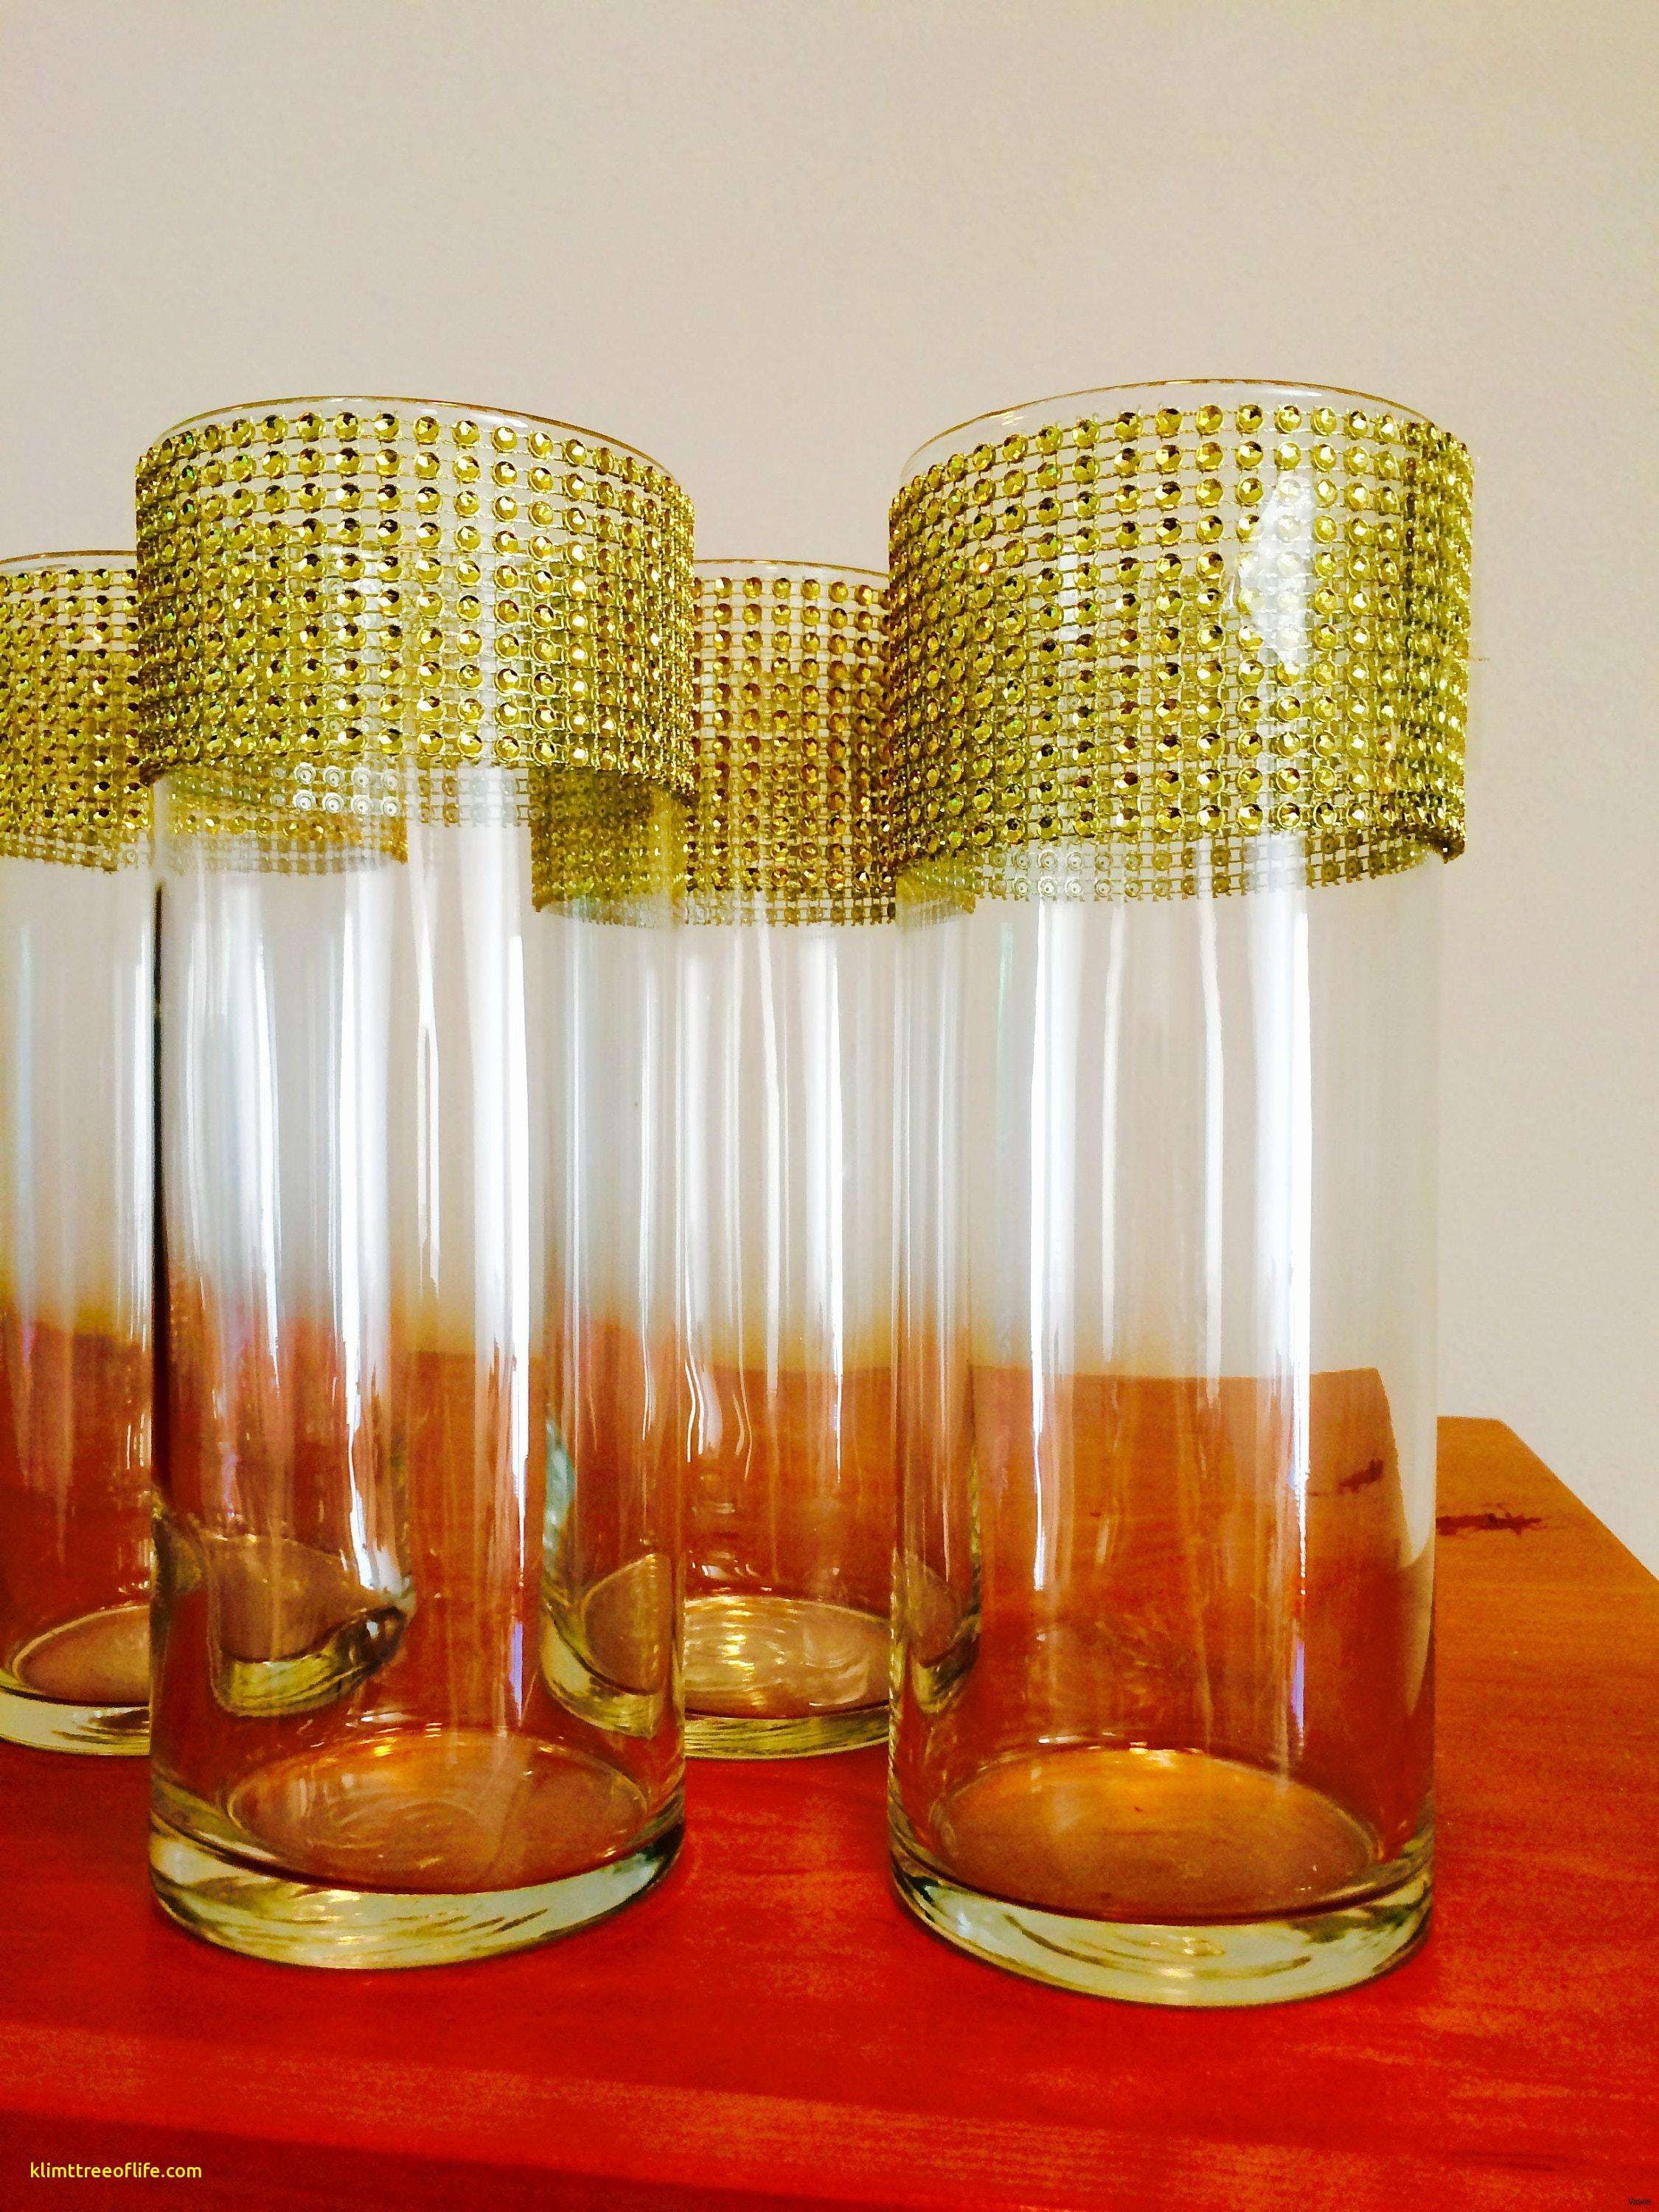 Large Square Clear Glass Vases Of 40 Glass Vases Bulk the Weekly World Pertaining to Elegant Vases Cheap